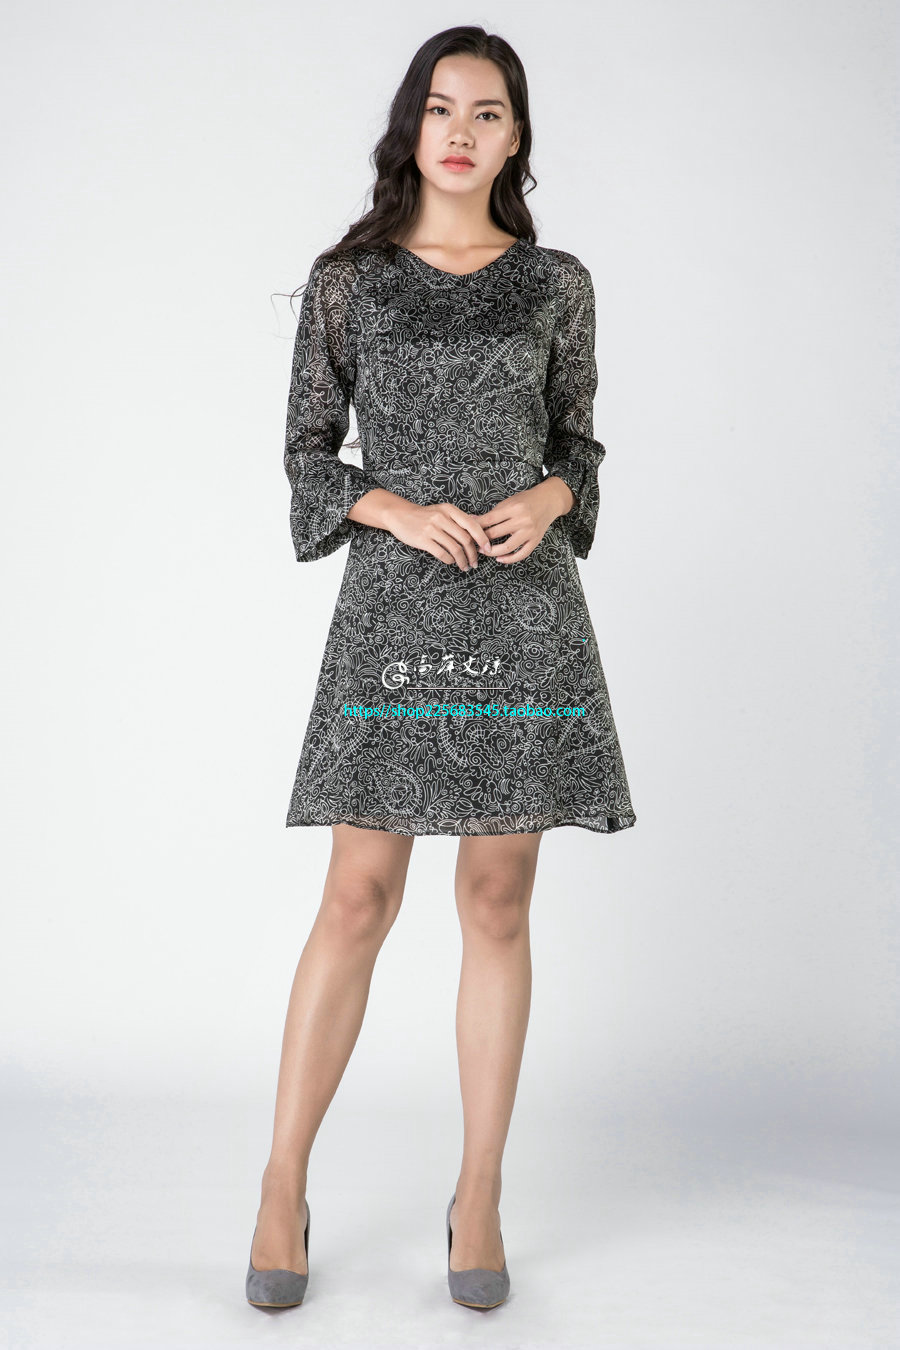 Gaoping  Wenqiong G1630 women silk long sleeve dress